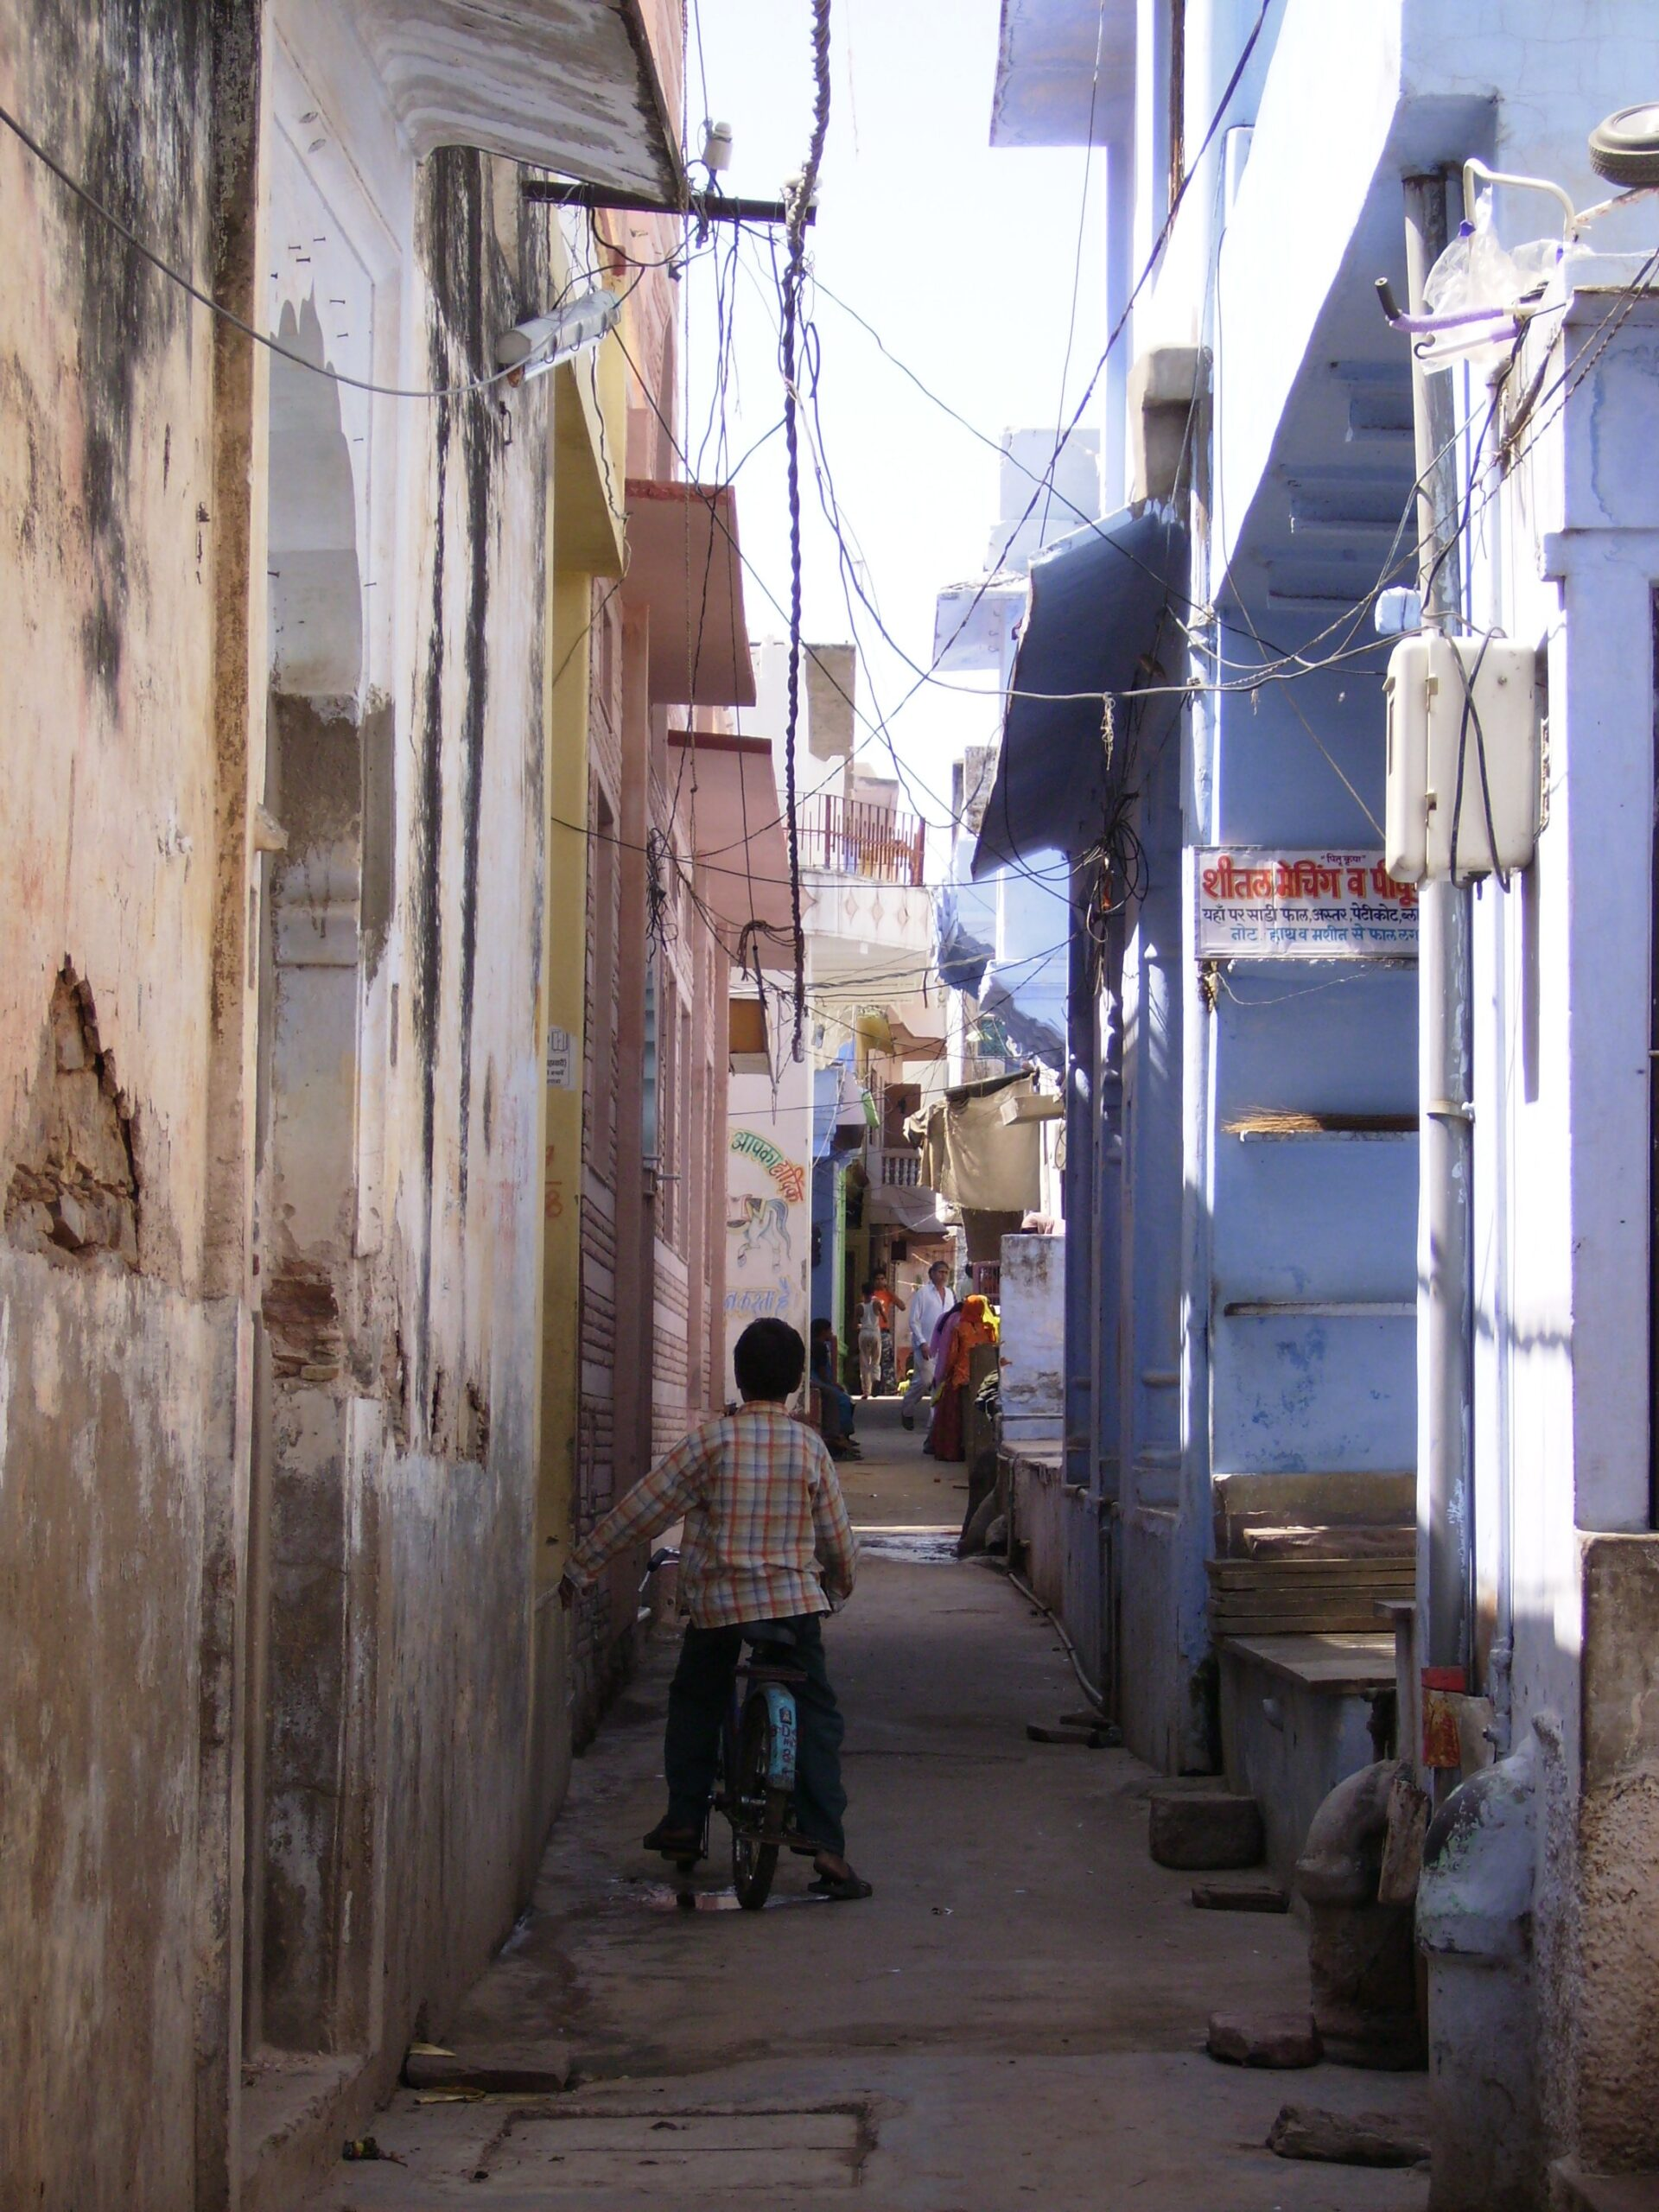 The narrow lanes in the city of Pushkar offer a lot to be explored in terms of Rajasthani food, traditions, temples and cafes.